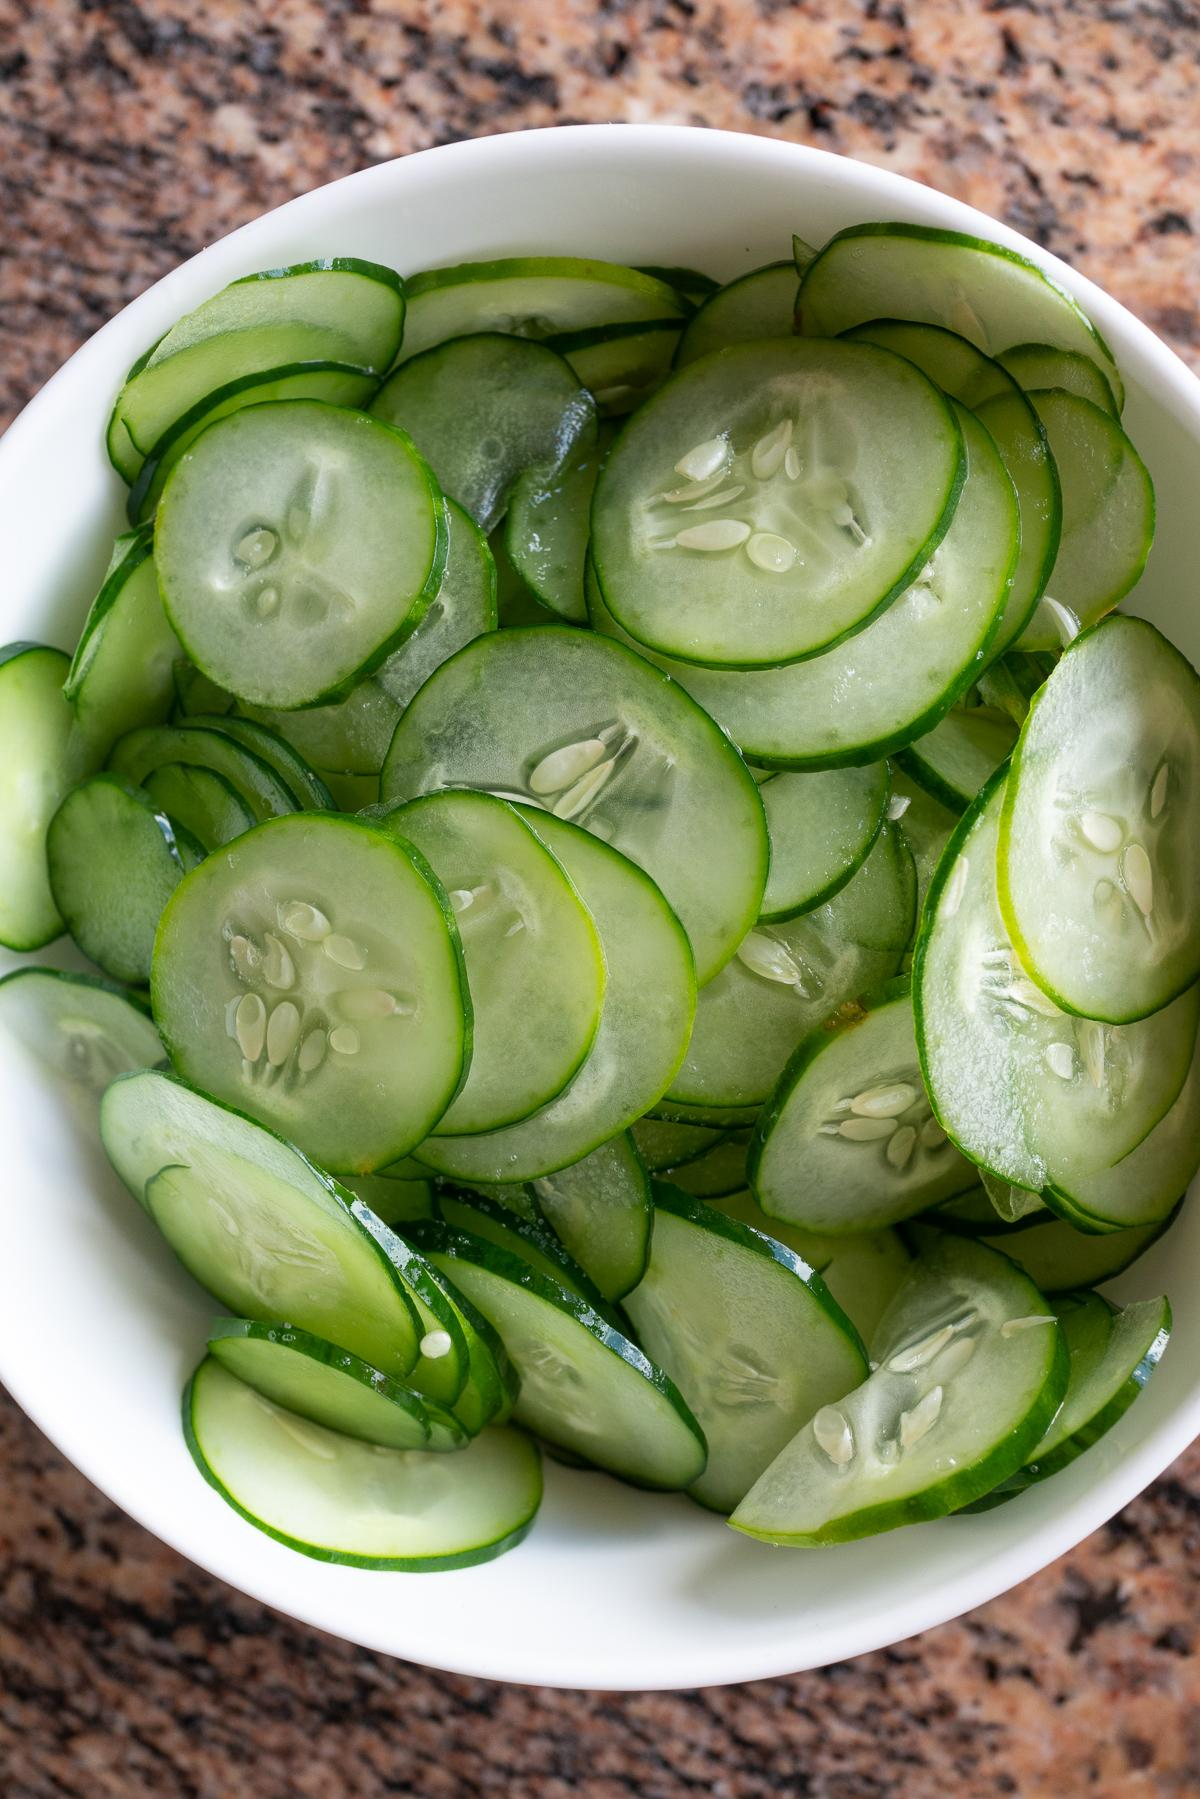 A bowl of thinly sliced Japanese cucumbers